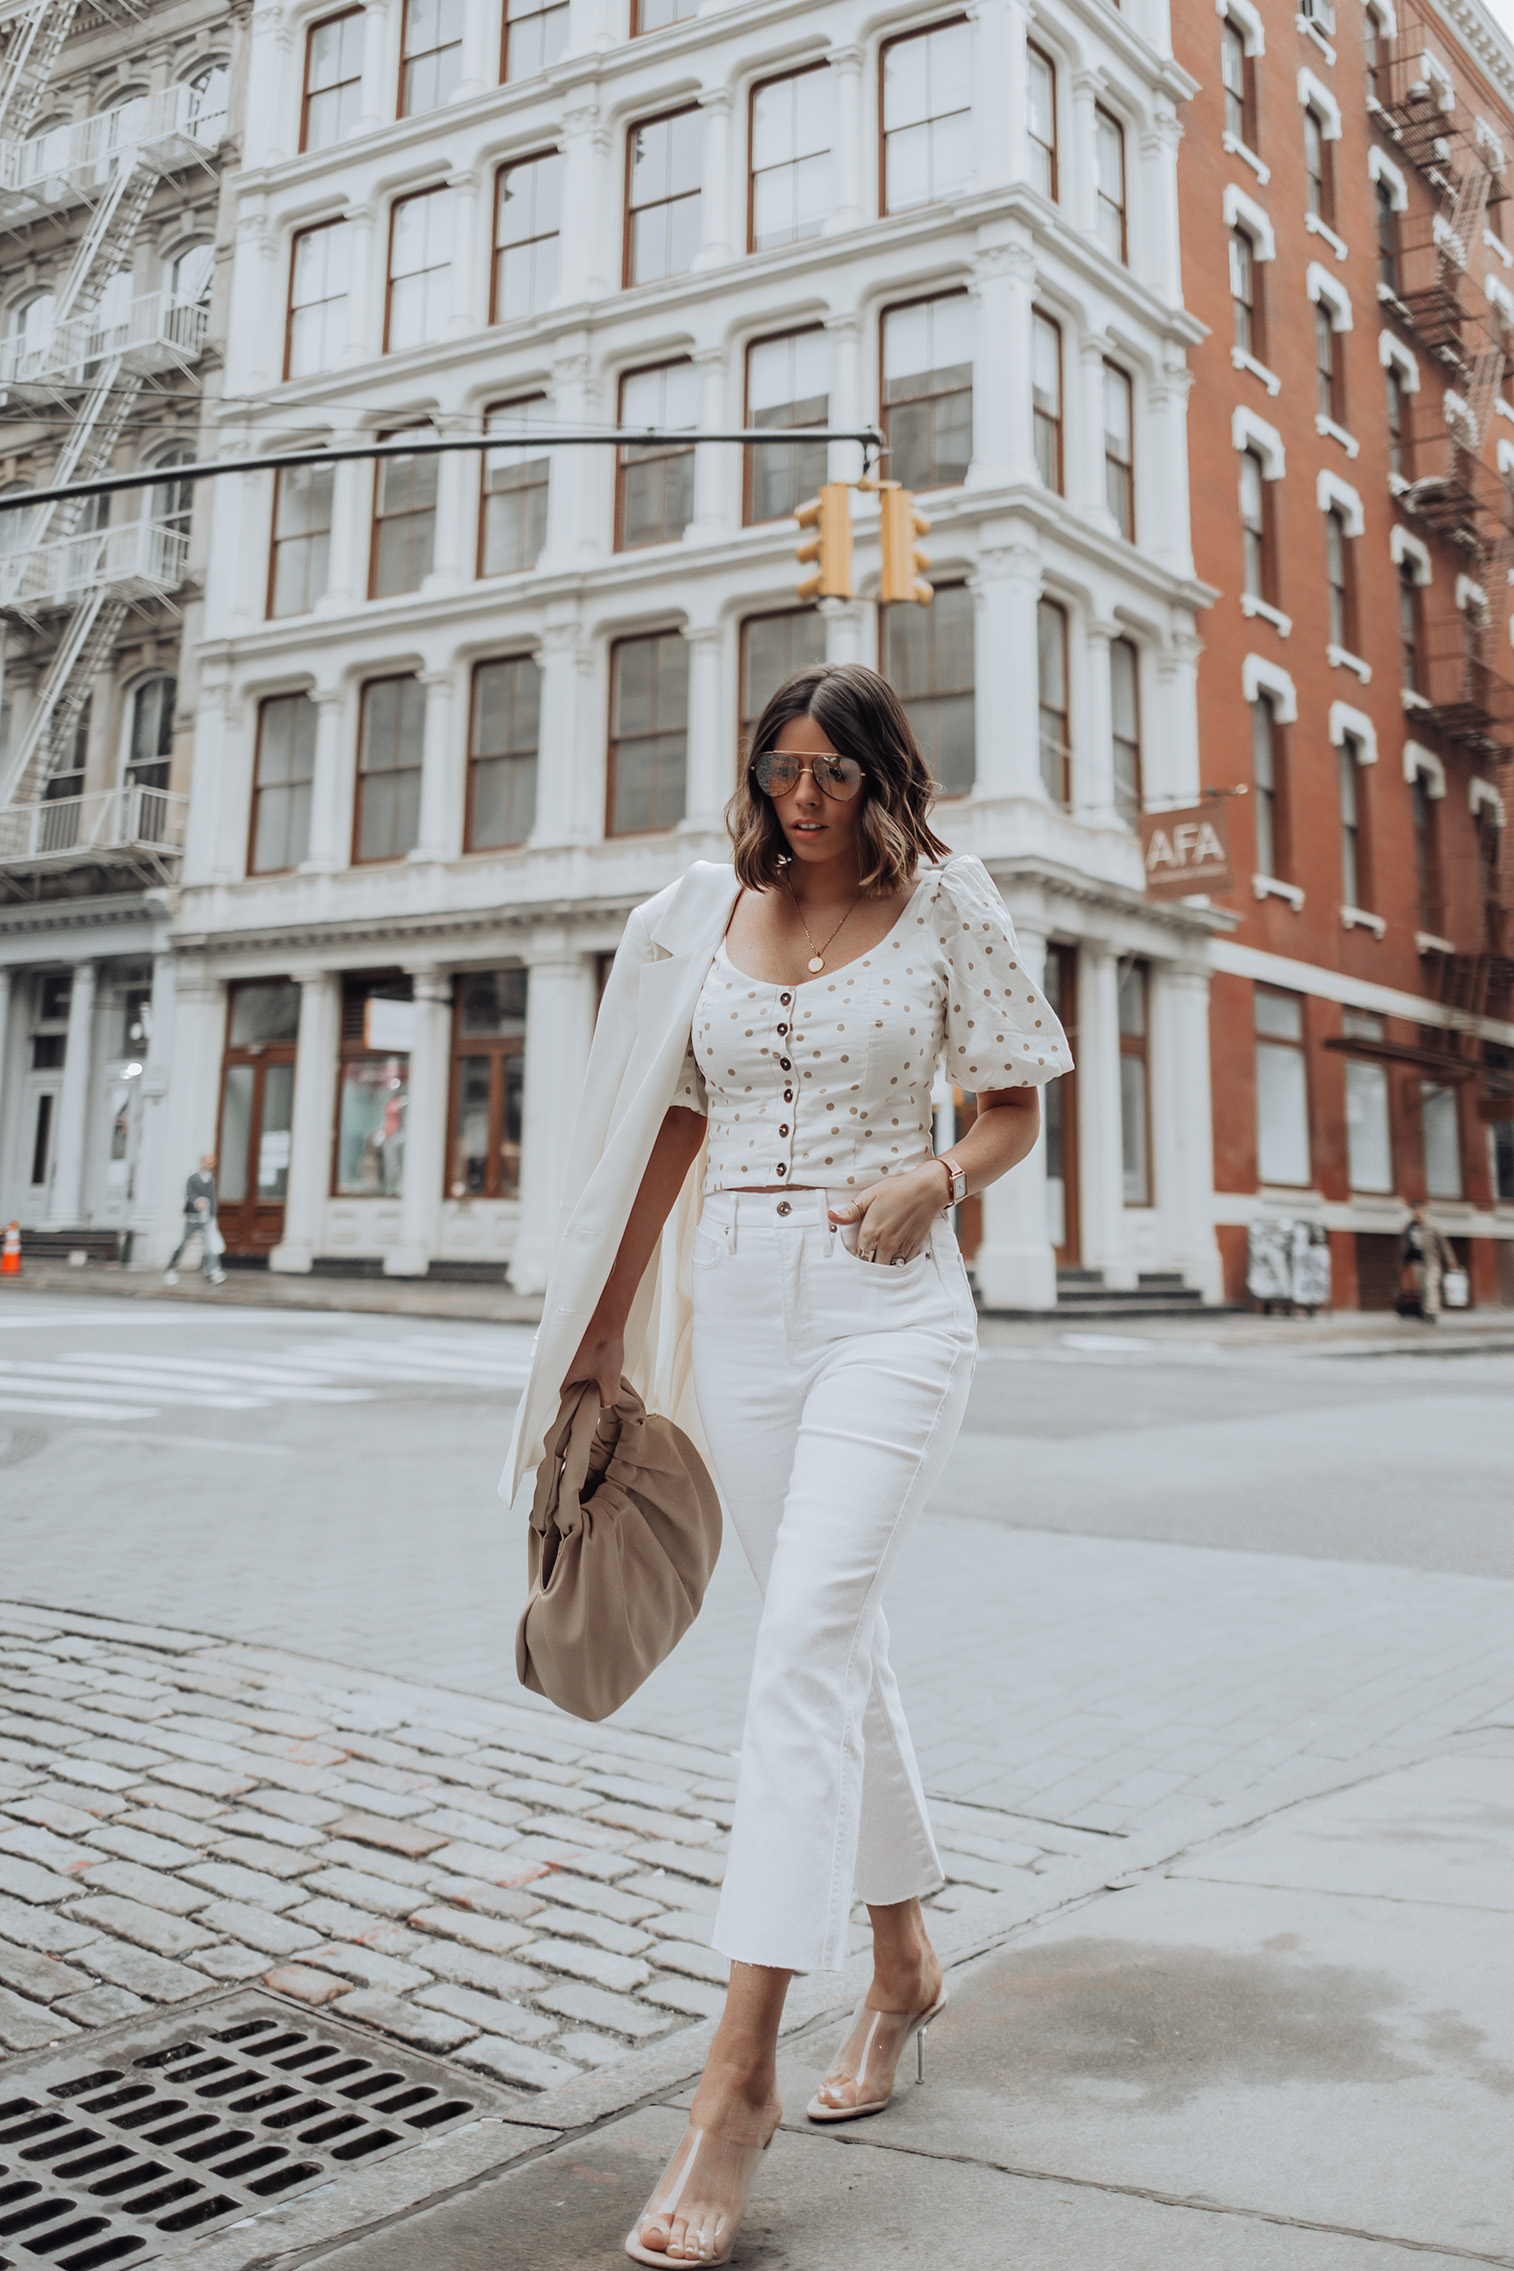 Happy Friday loves! Cutting straight to the chase and filling you guys in on the best pair of white denim jeans I've ever owned. Yep, you heard me correctly. The best EVER! Good American jeans have been around for a few years and honestly I wasn't immediately drawn to the brand. But I saw this exact pair of jeans on a blogger friend and thought they looked really fab. So I took the bait (yes happens to the best of us) and made the purchase.